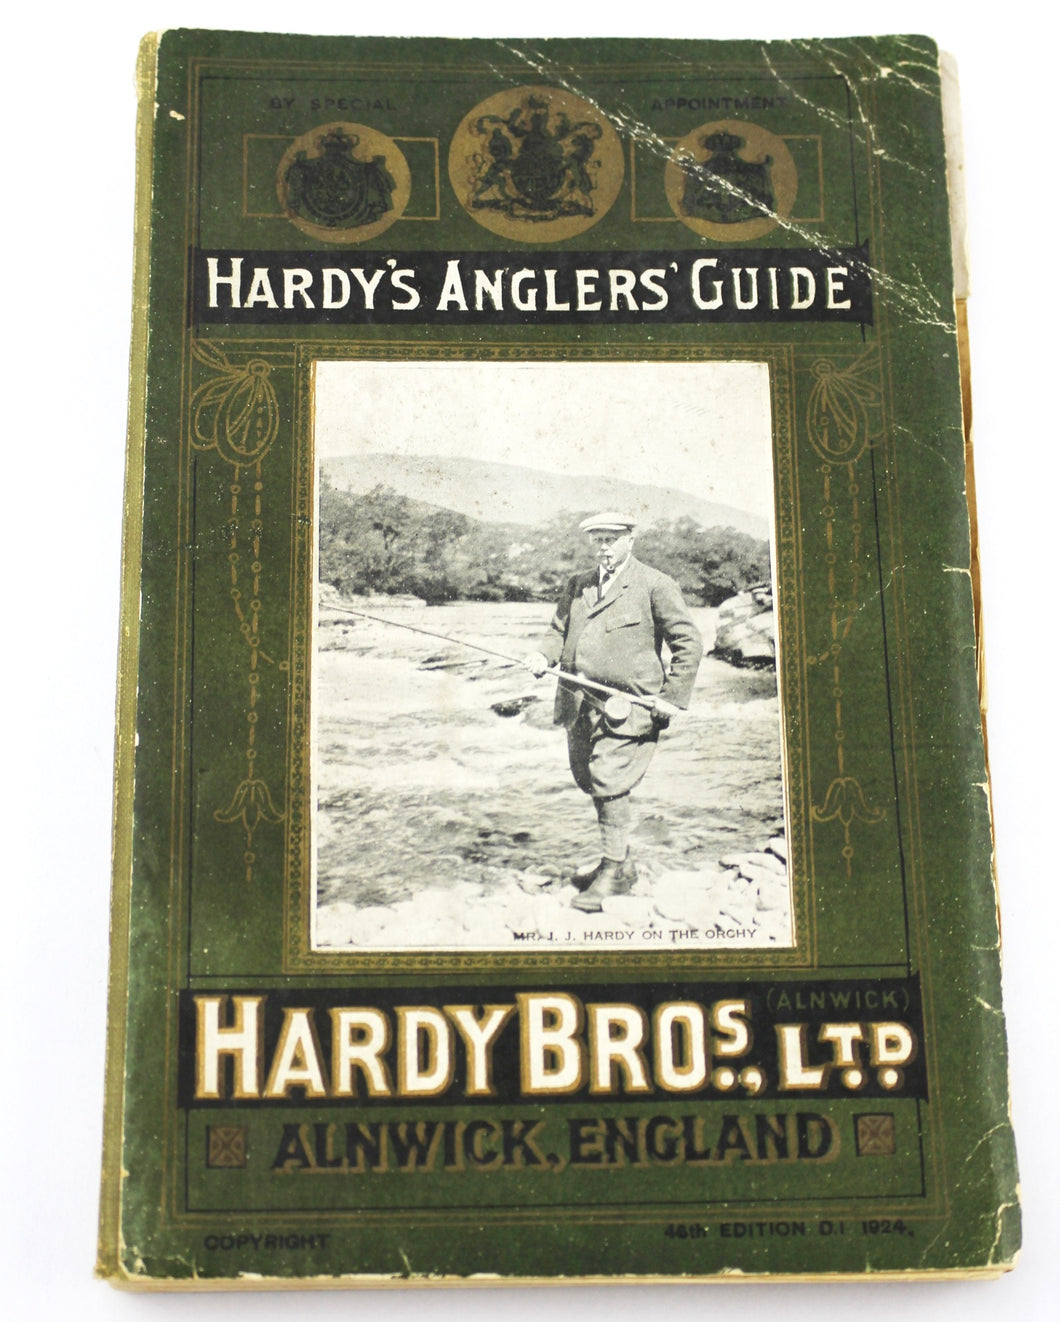 Hardy's Anglers' Guide, 1924